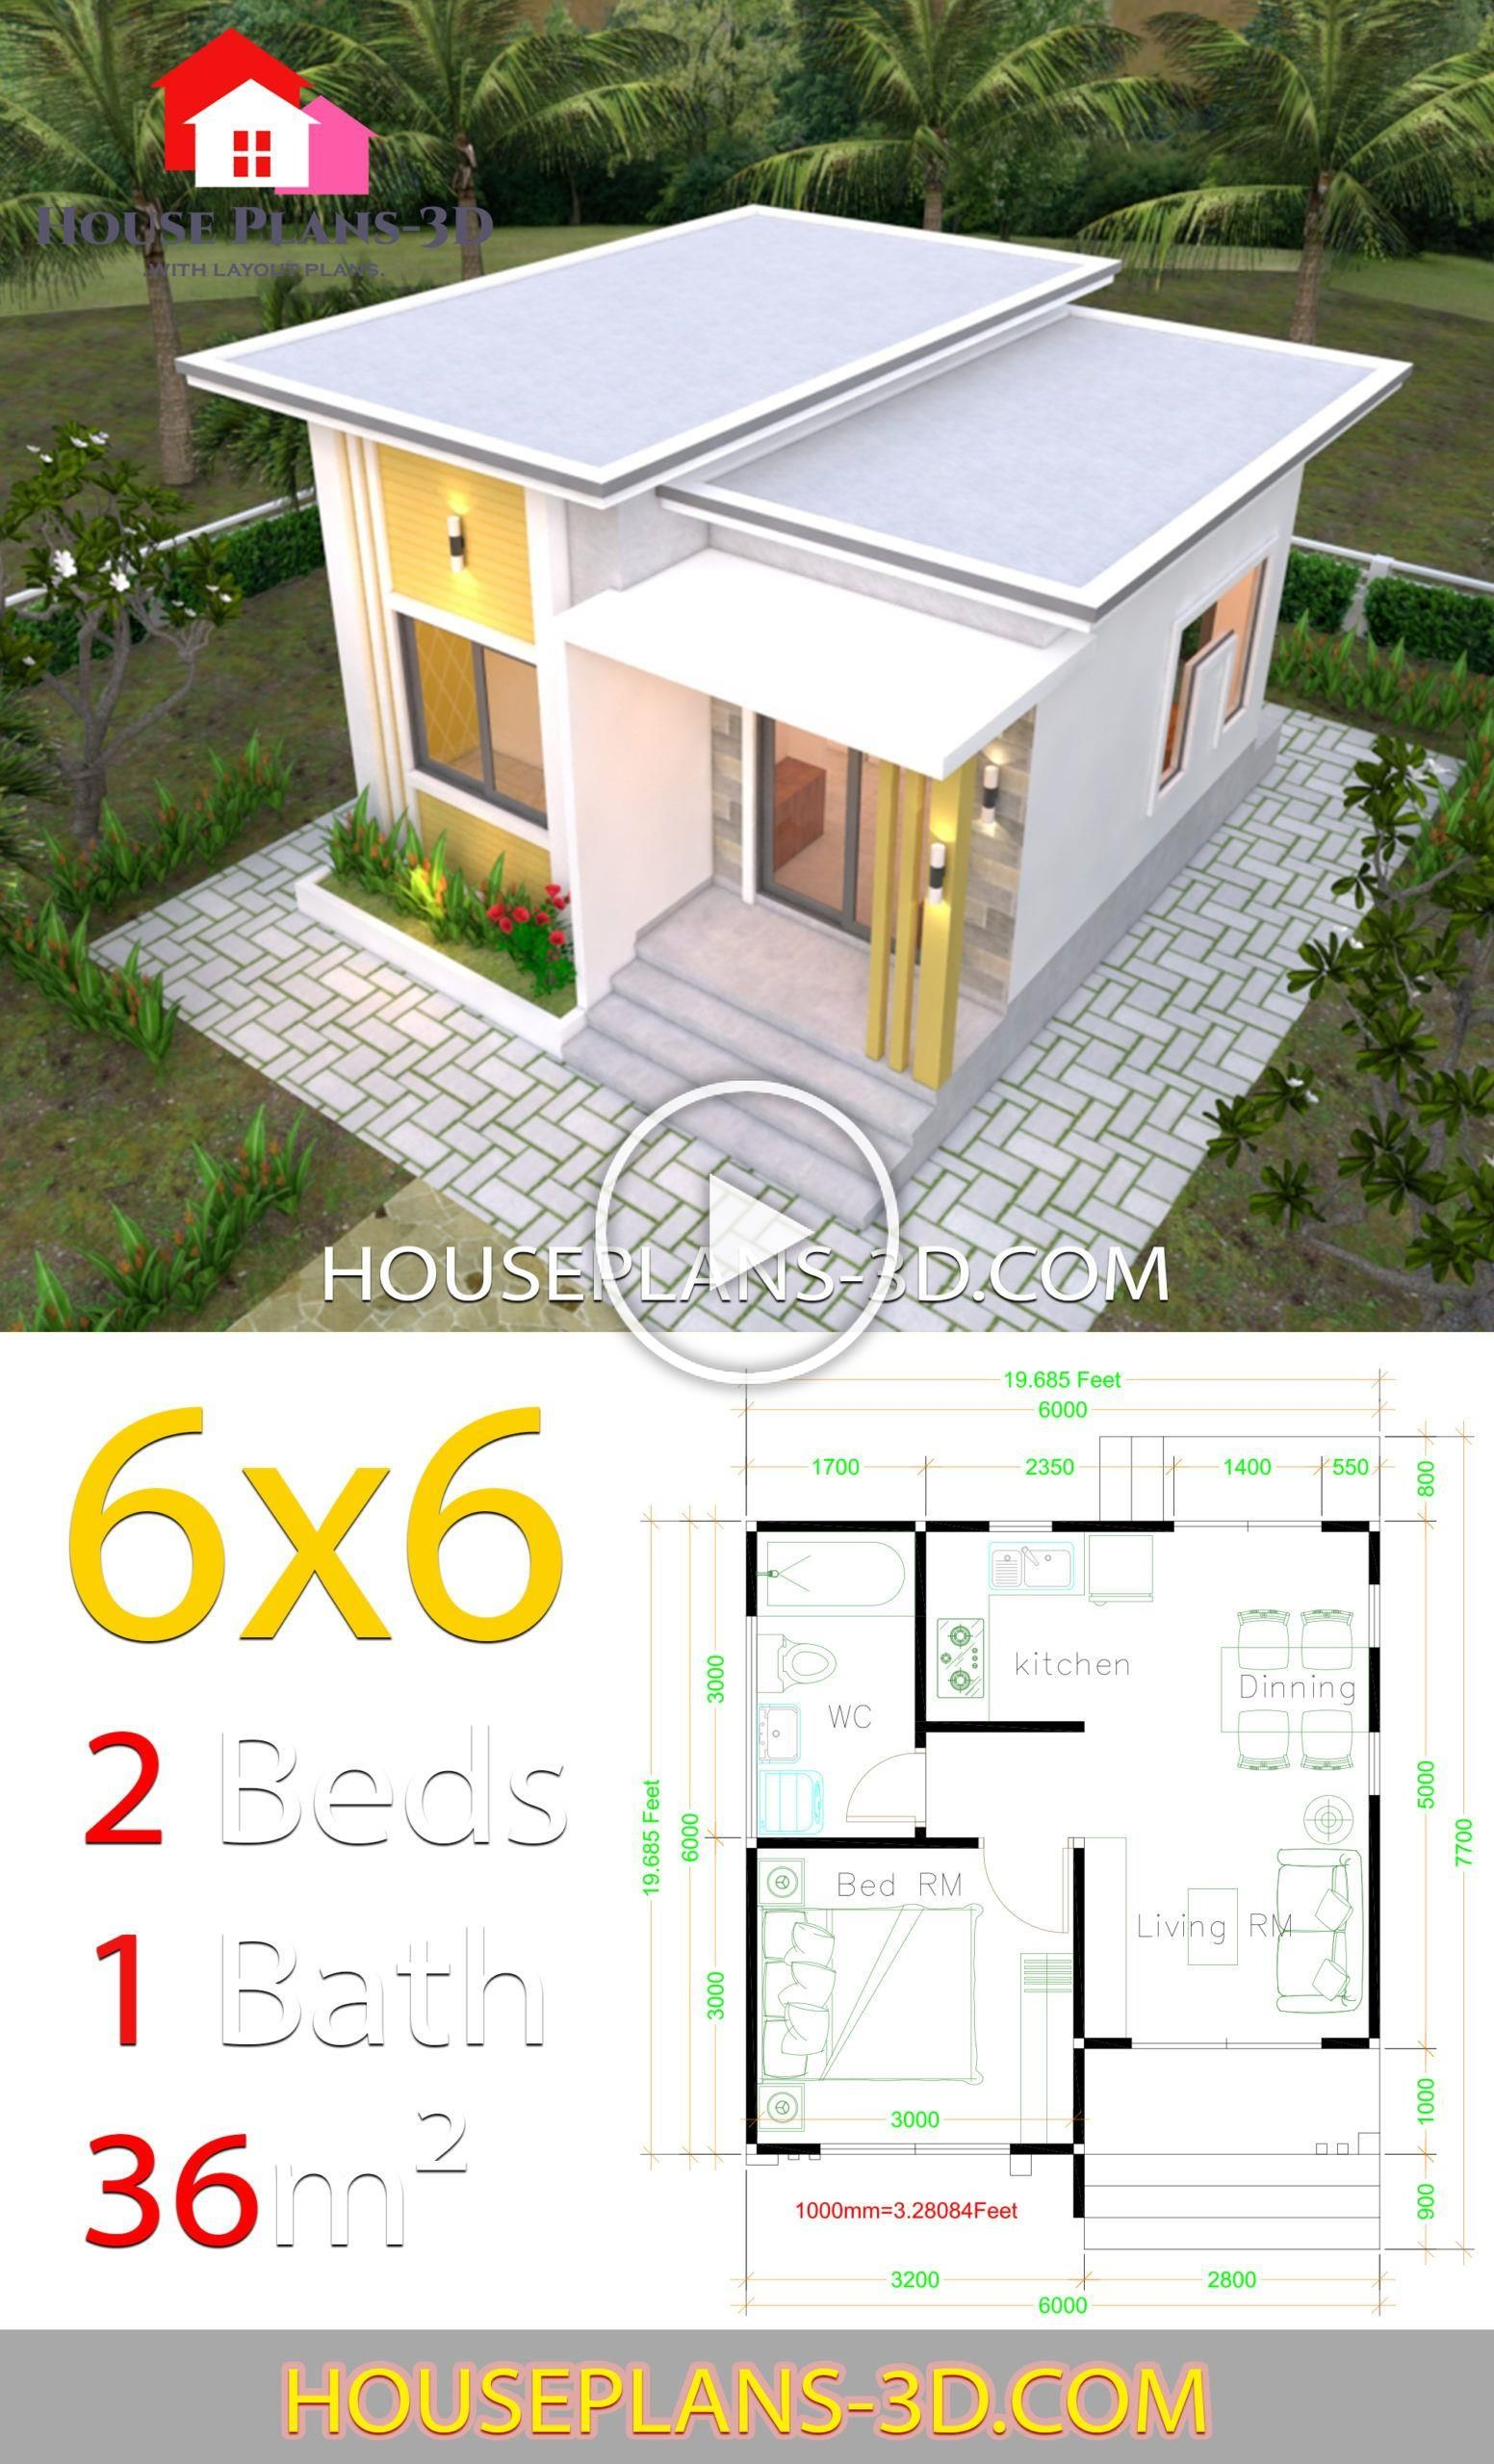 House Plans 6x6 With One Bedrooms Flat Roof House Plans 3d In 2020 One Bedroom House Plans Small House Design Philippines Flat Roof House